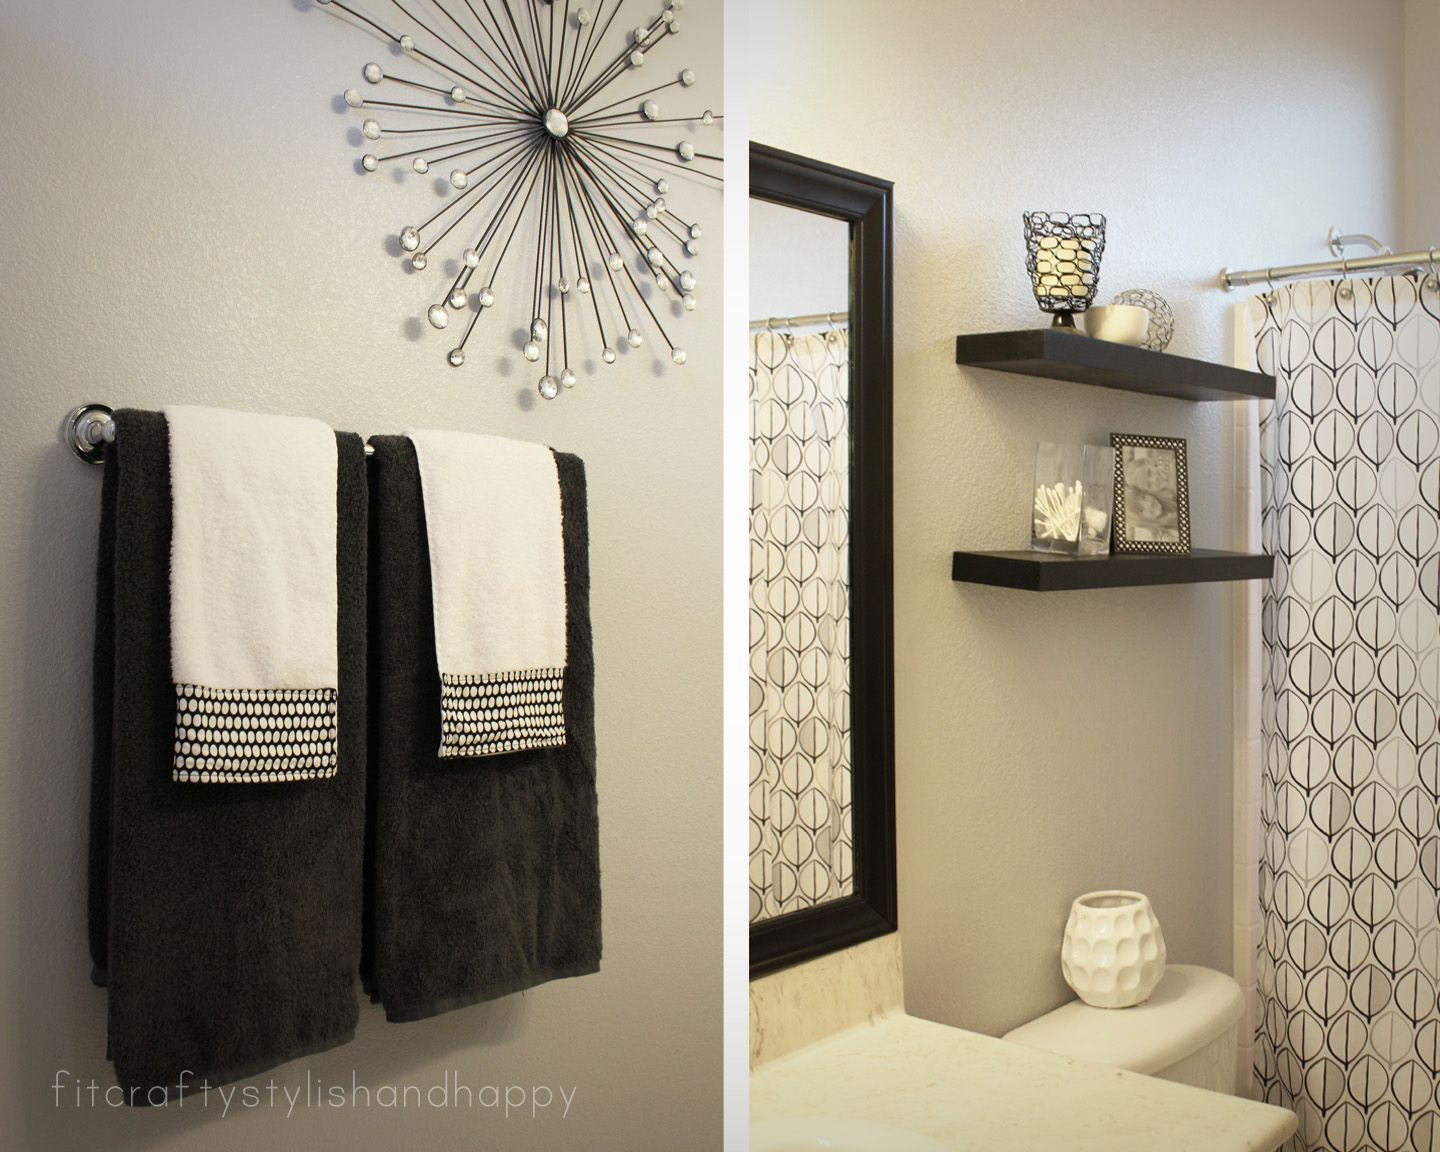 Fit Crafty Stylish And Happy Guest Bathroom Makeover Spare - Black and white bathroom towels for bathroom decor ideas